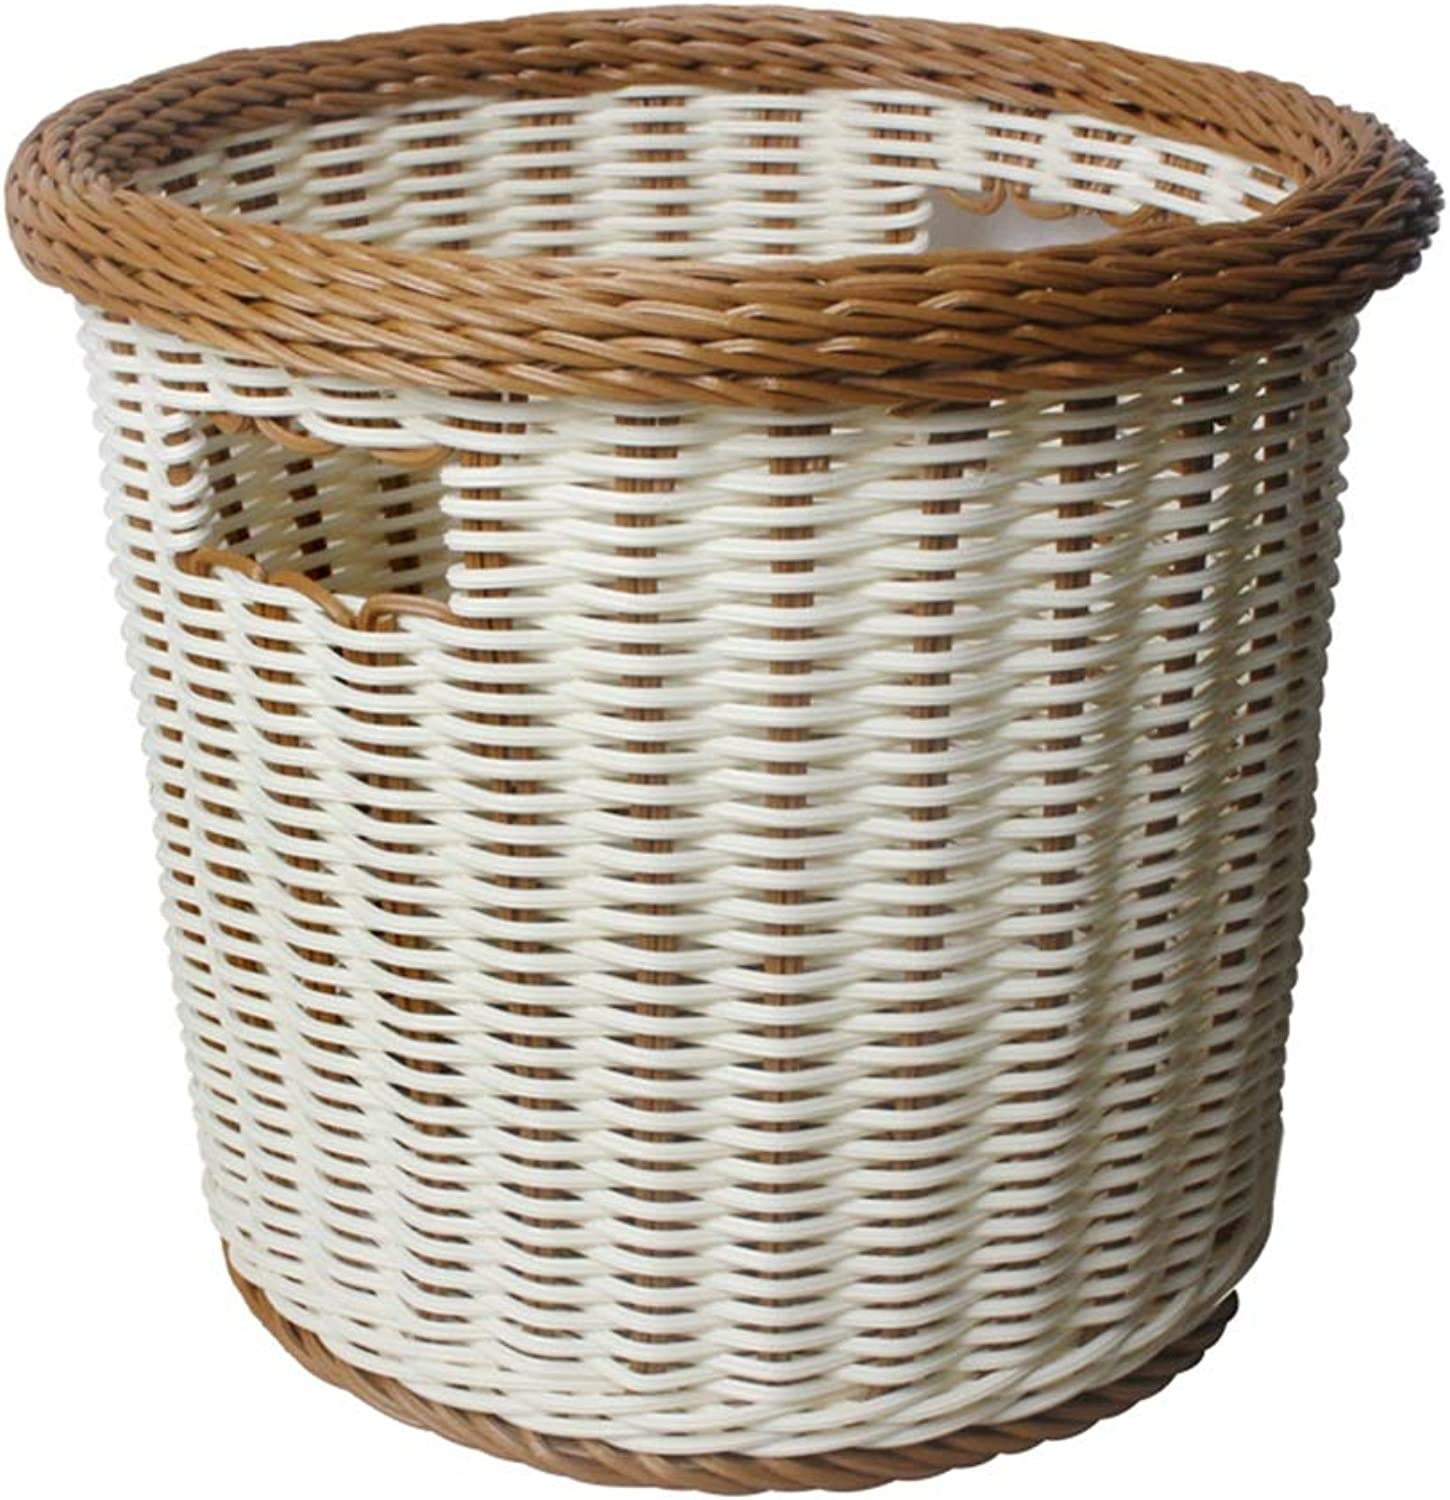 Laundry Hamper Imitation Rattan Bedroom Clothes Storage Basket Plastic color Mixing ZHANGQIANG (Size   36  32.5cm)